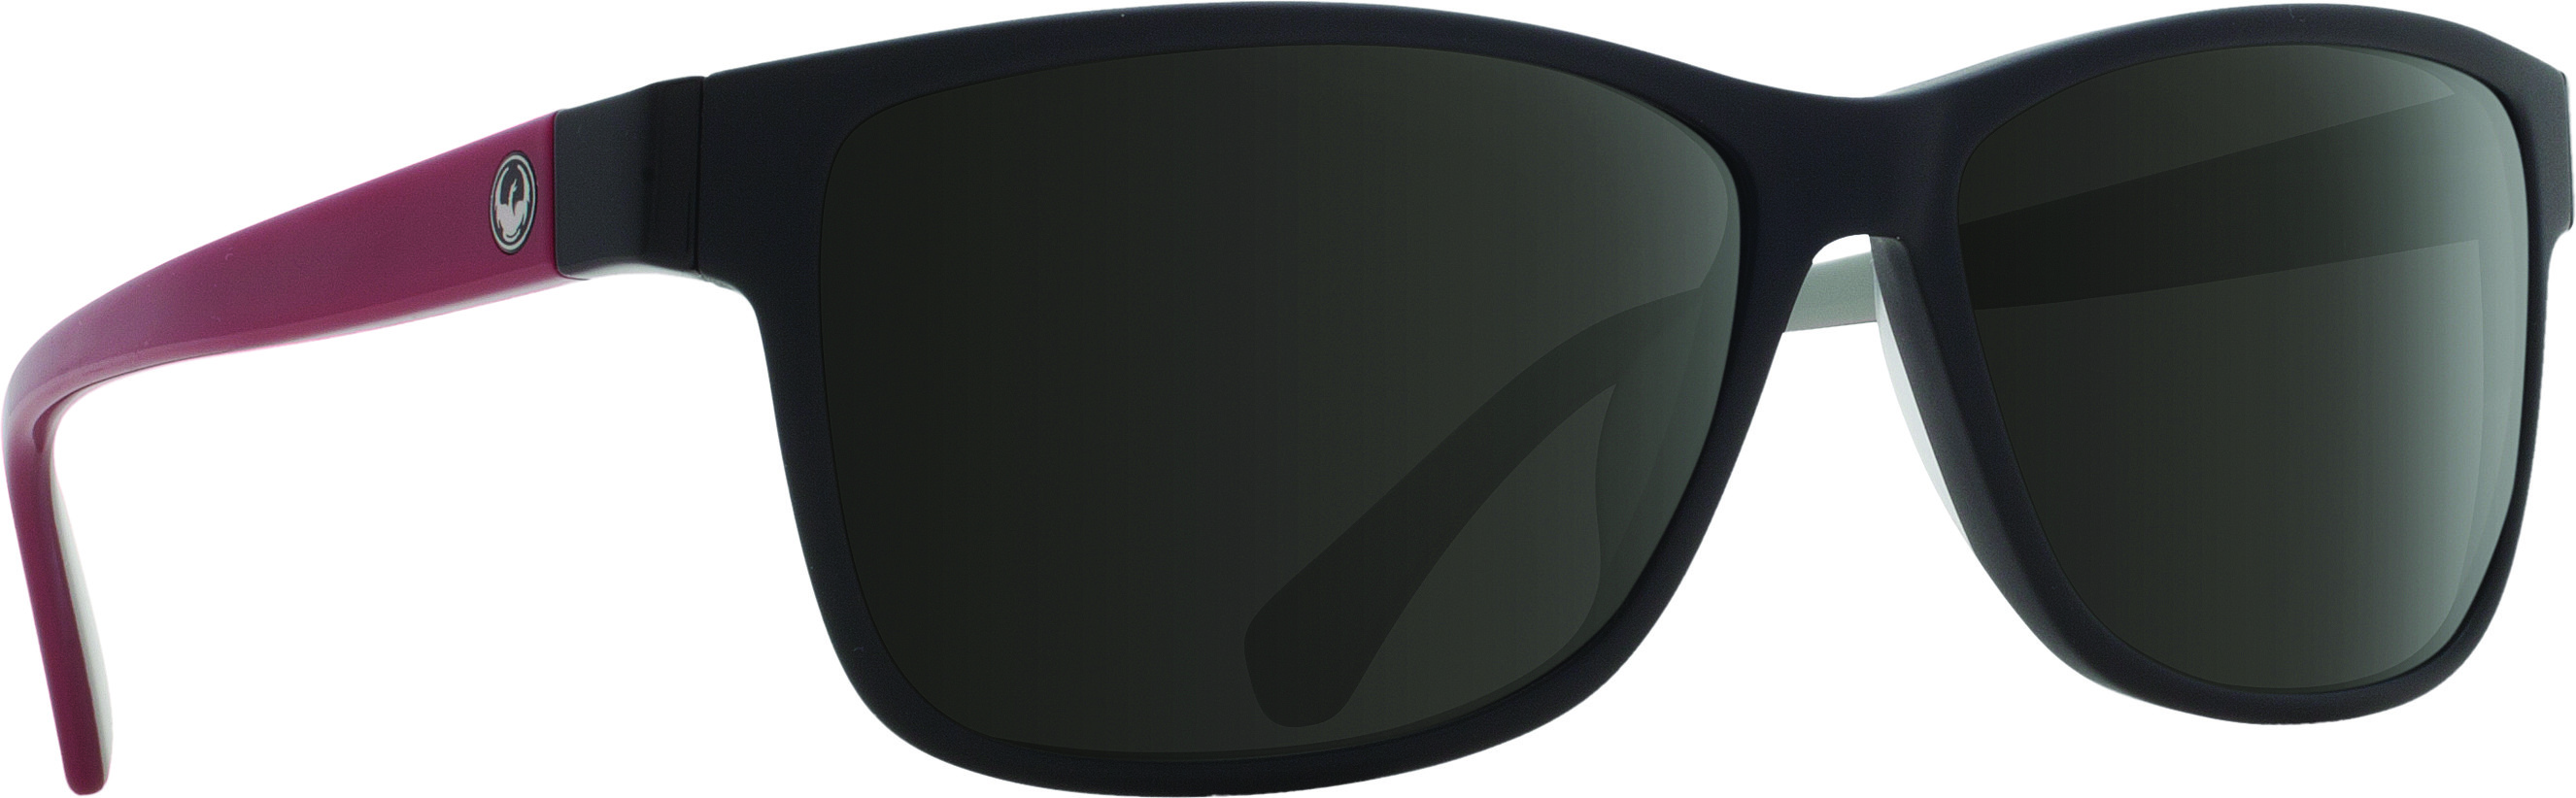 Exit Row Sunglasses Matte Black W/Grey Lens